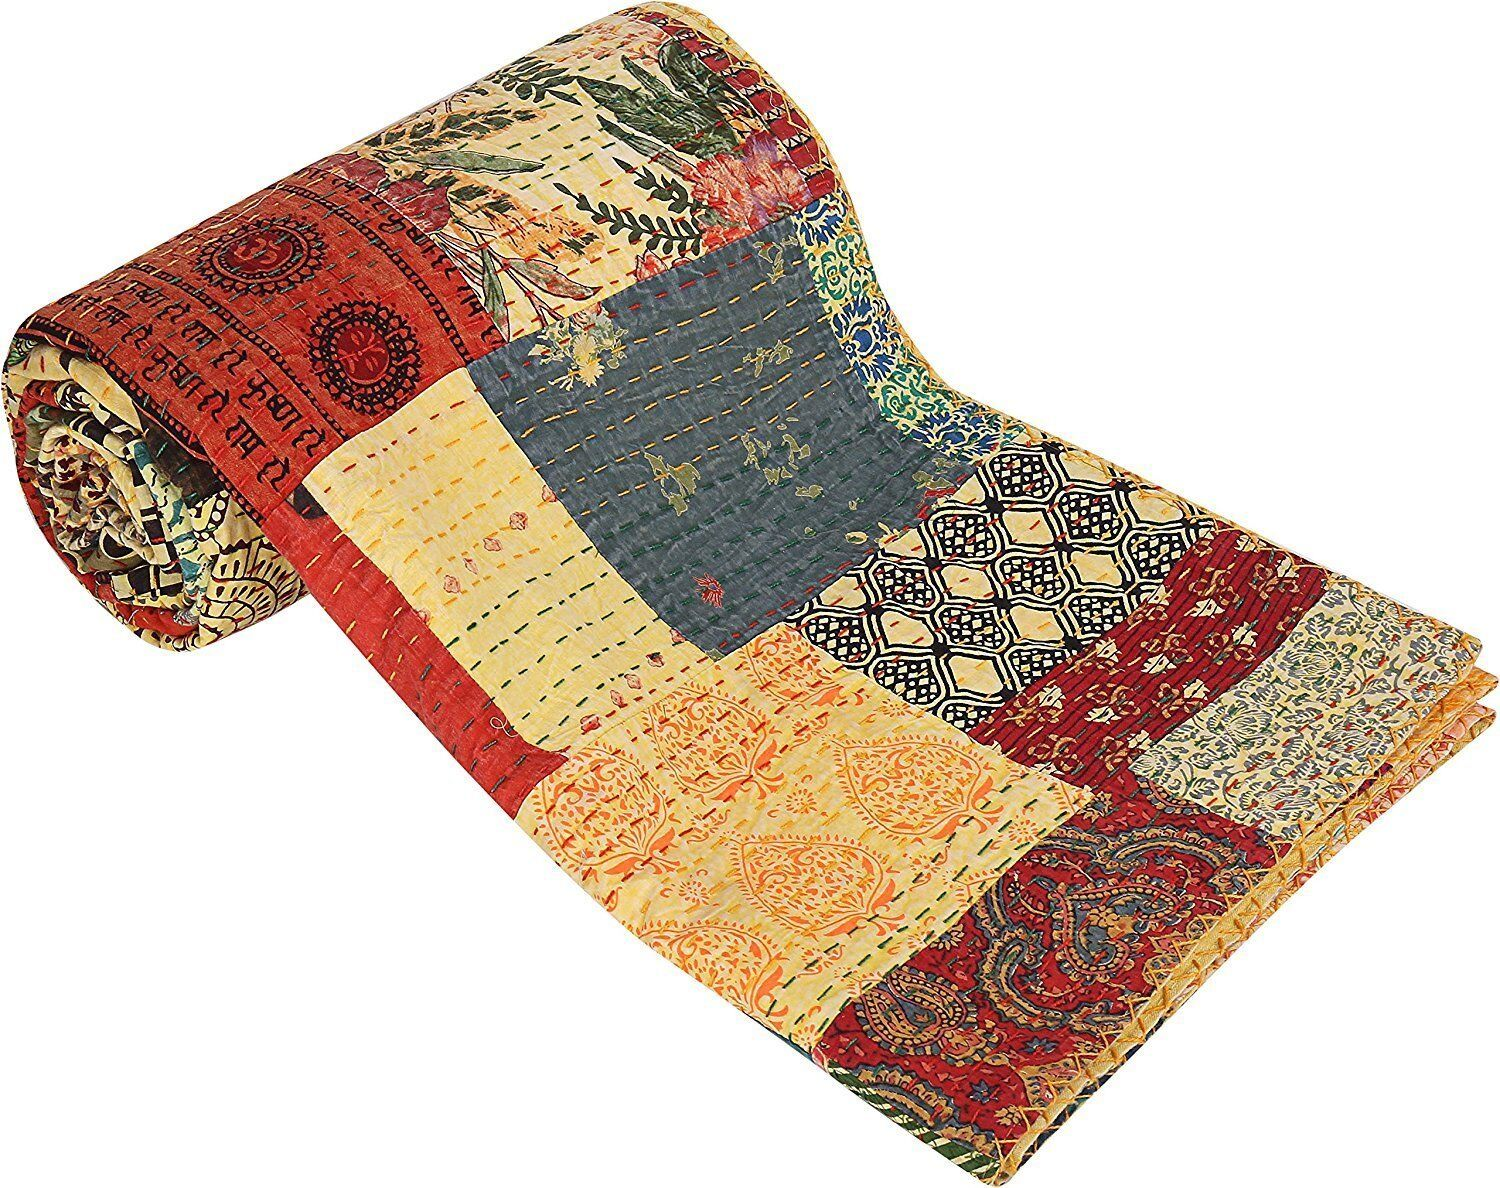 Cotton Bedcover Kantha Quilt Patchwork Cotton Indian Bedspread HThrow Baby Quilt